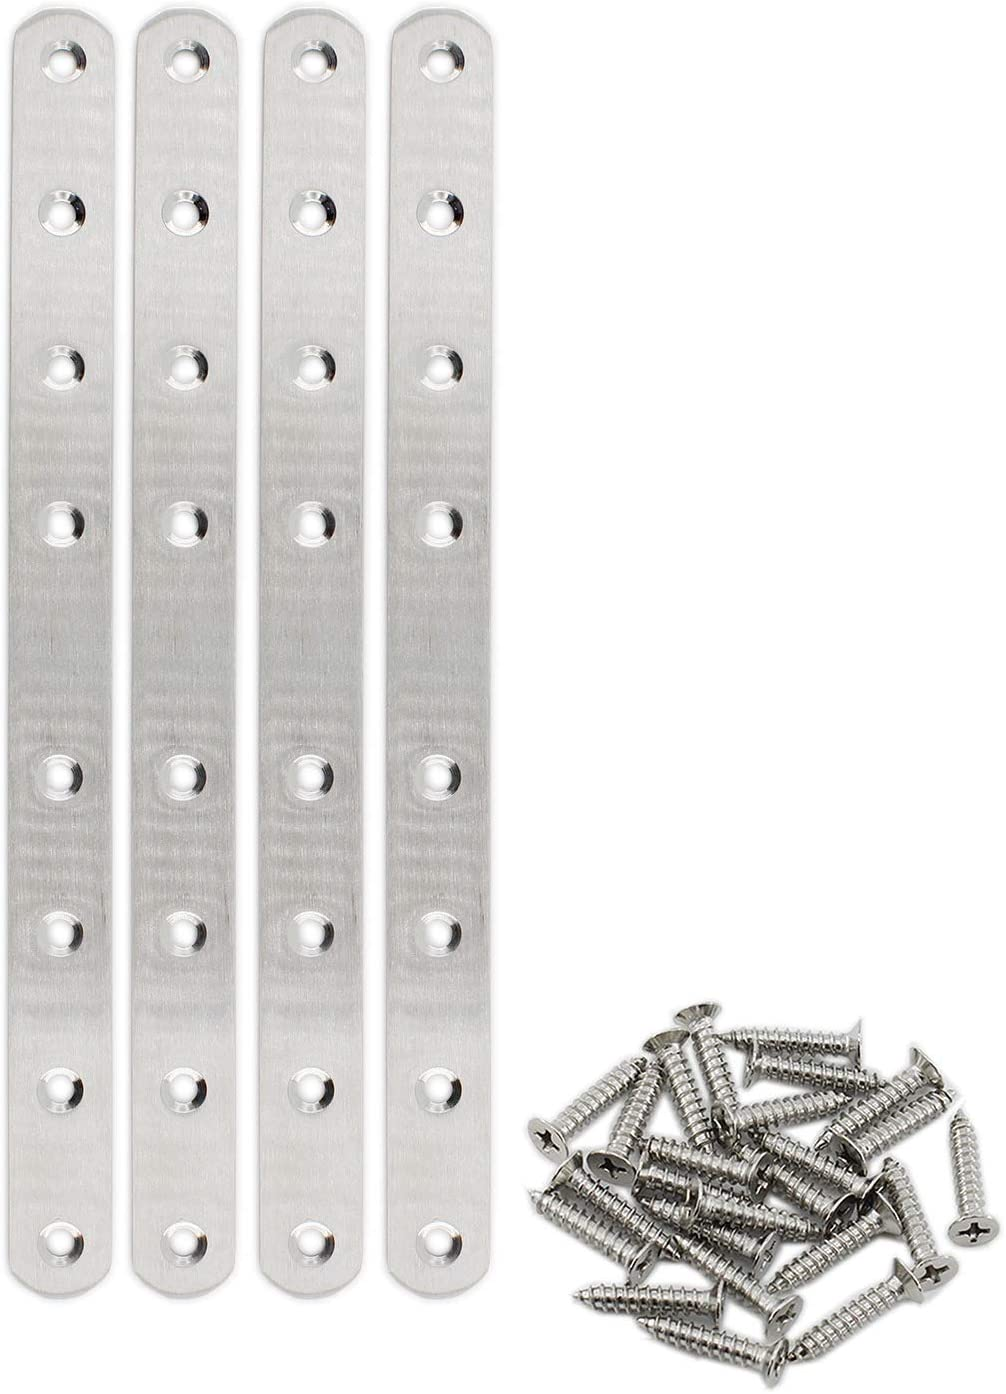 4 Pack Flat Mending Plate Max 54% OFF service for Steel ULIFESTAR Wood Stainless Str